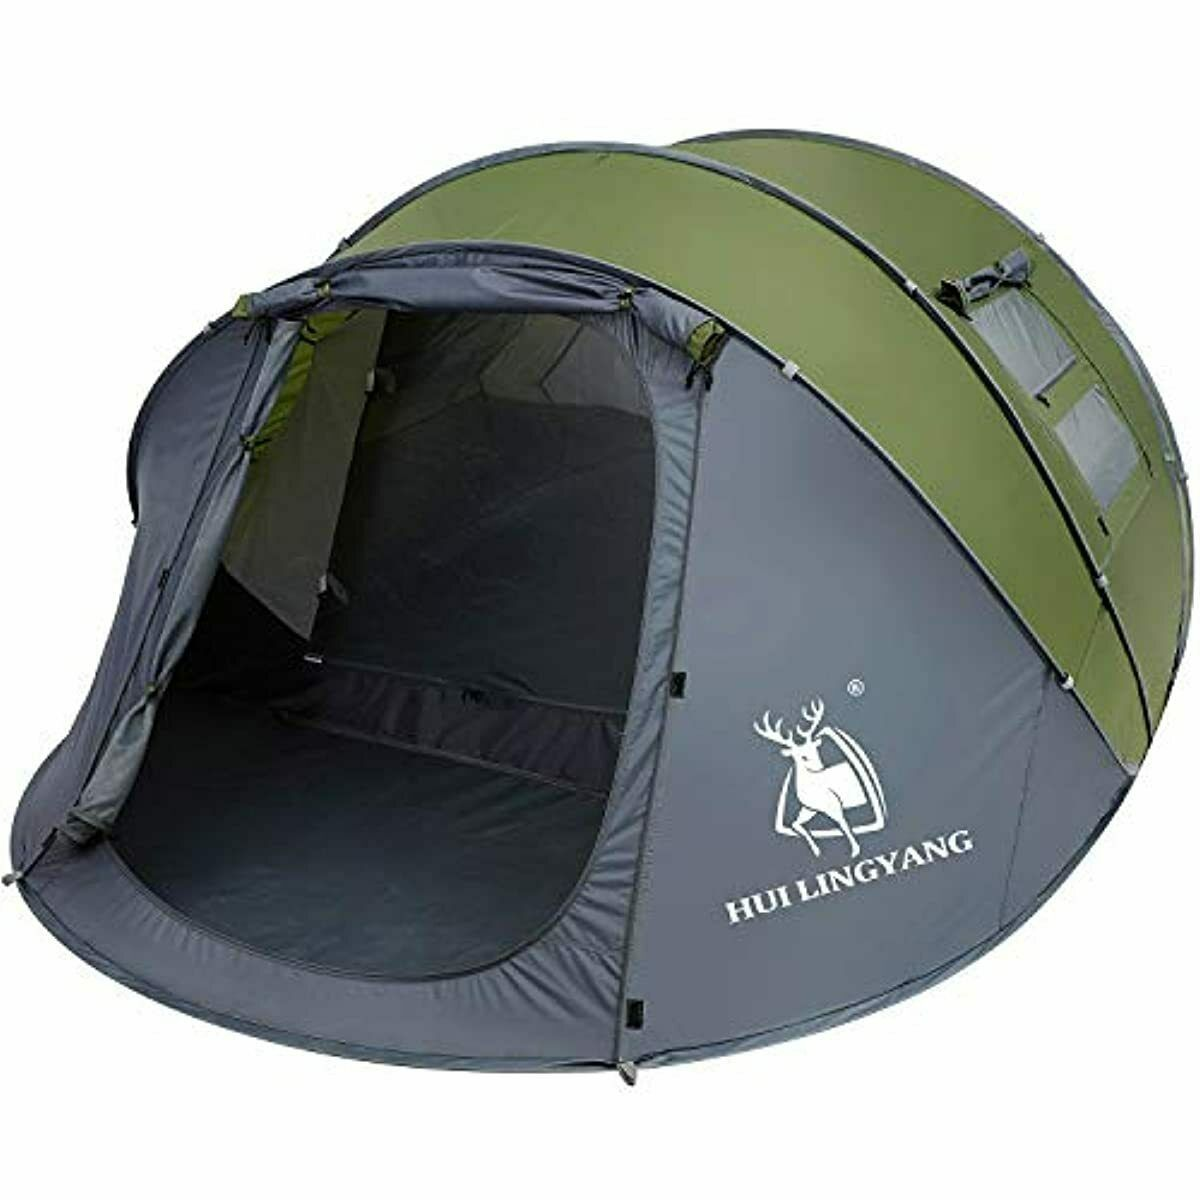 6 person easy pop up tent automatic